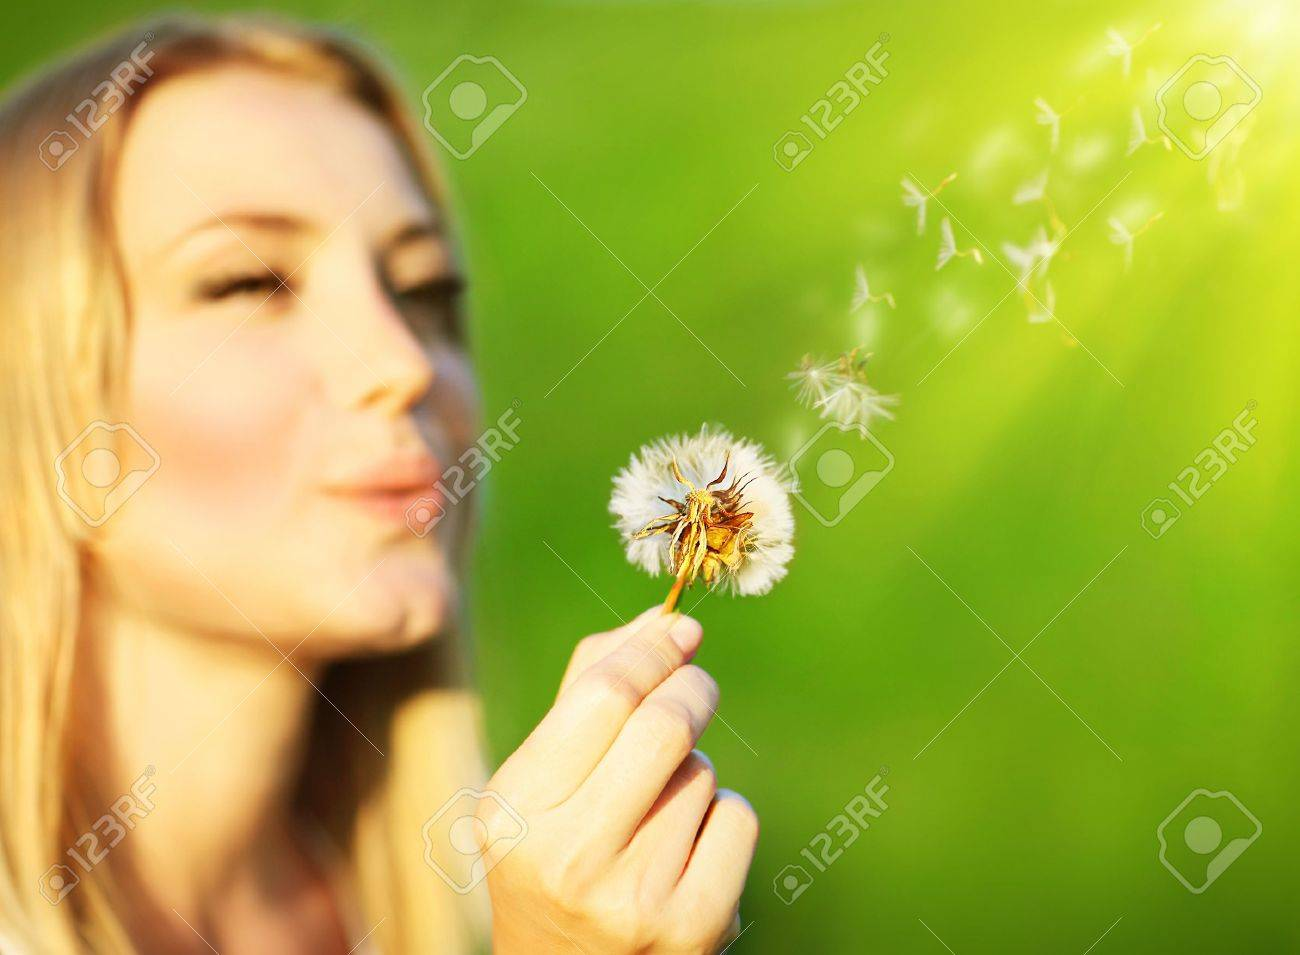 Happy beautiful girl blowing dandelion, over green nature background, selective focus, wish concept Stock Photo - 9642286